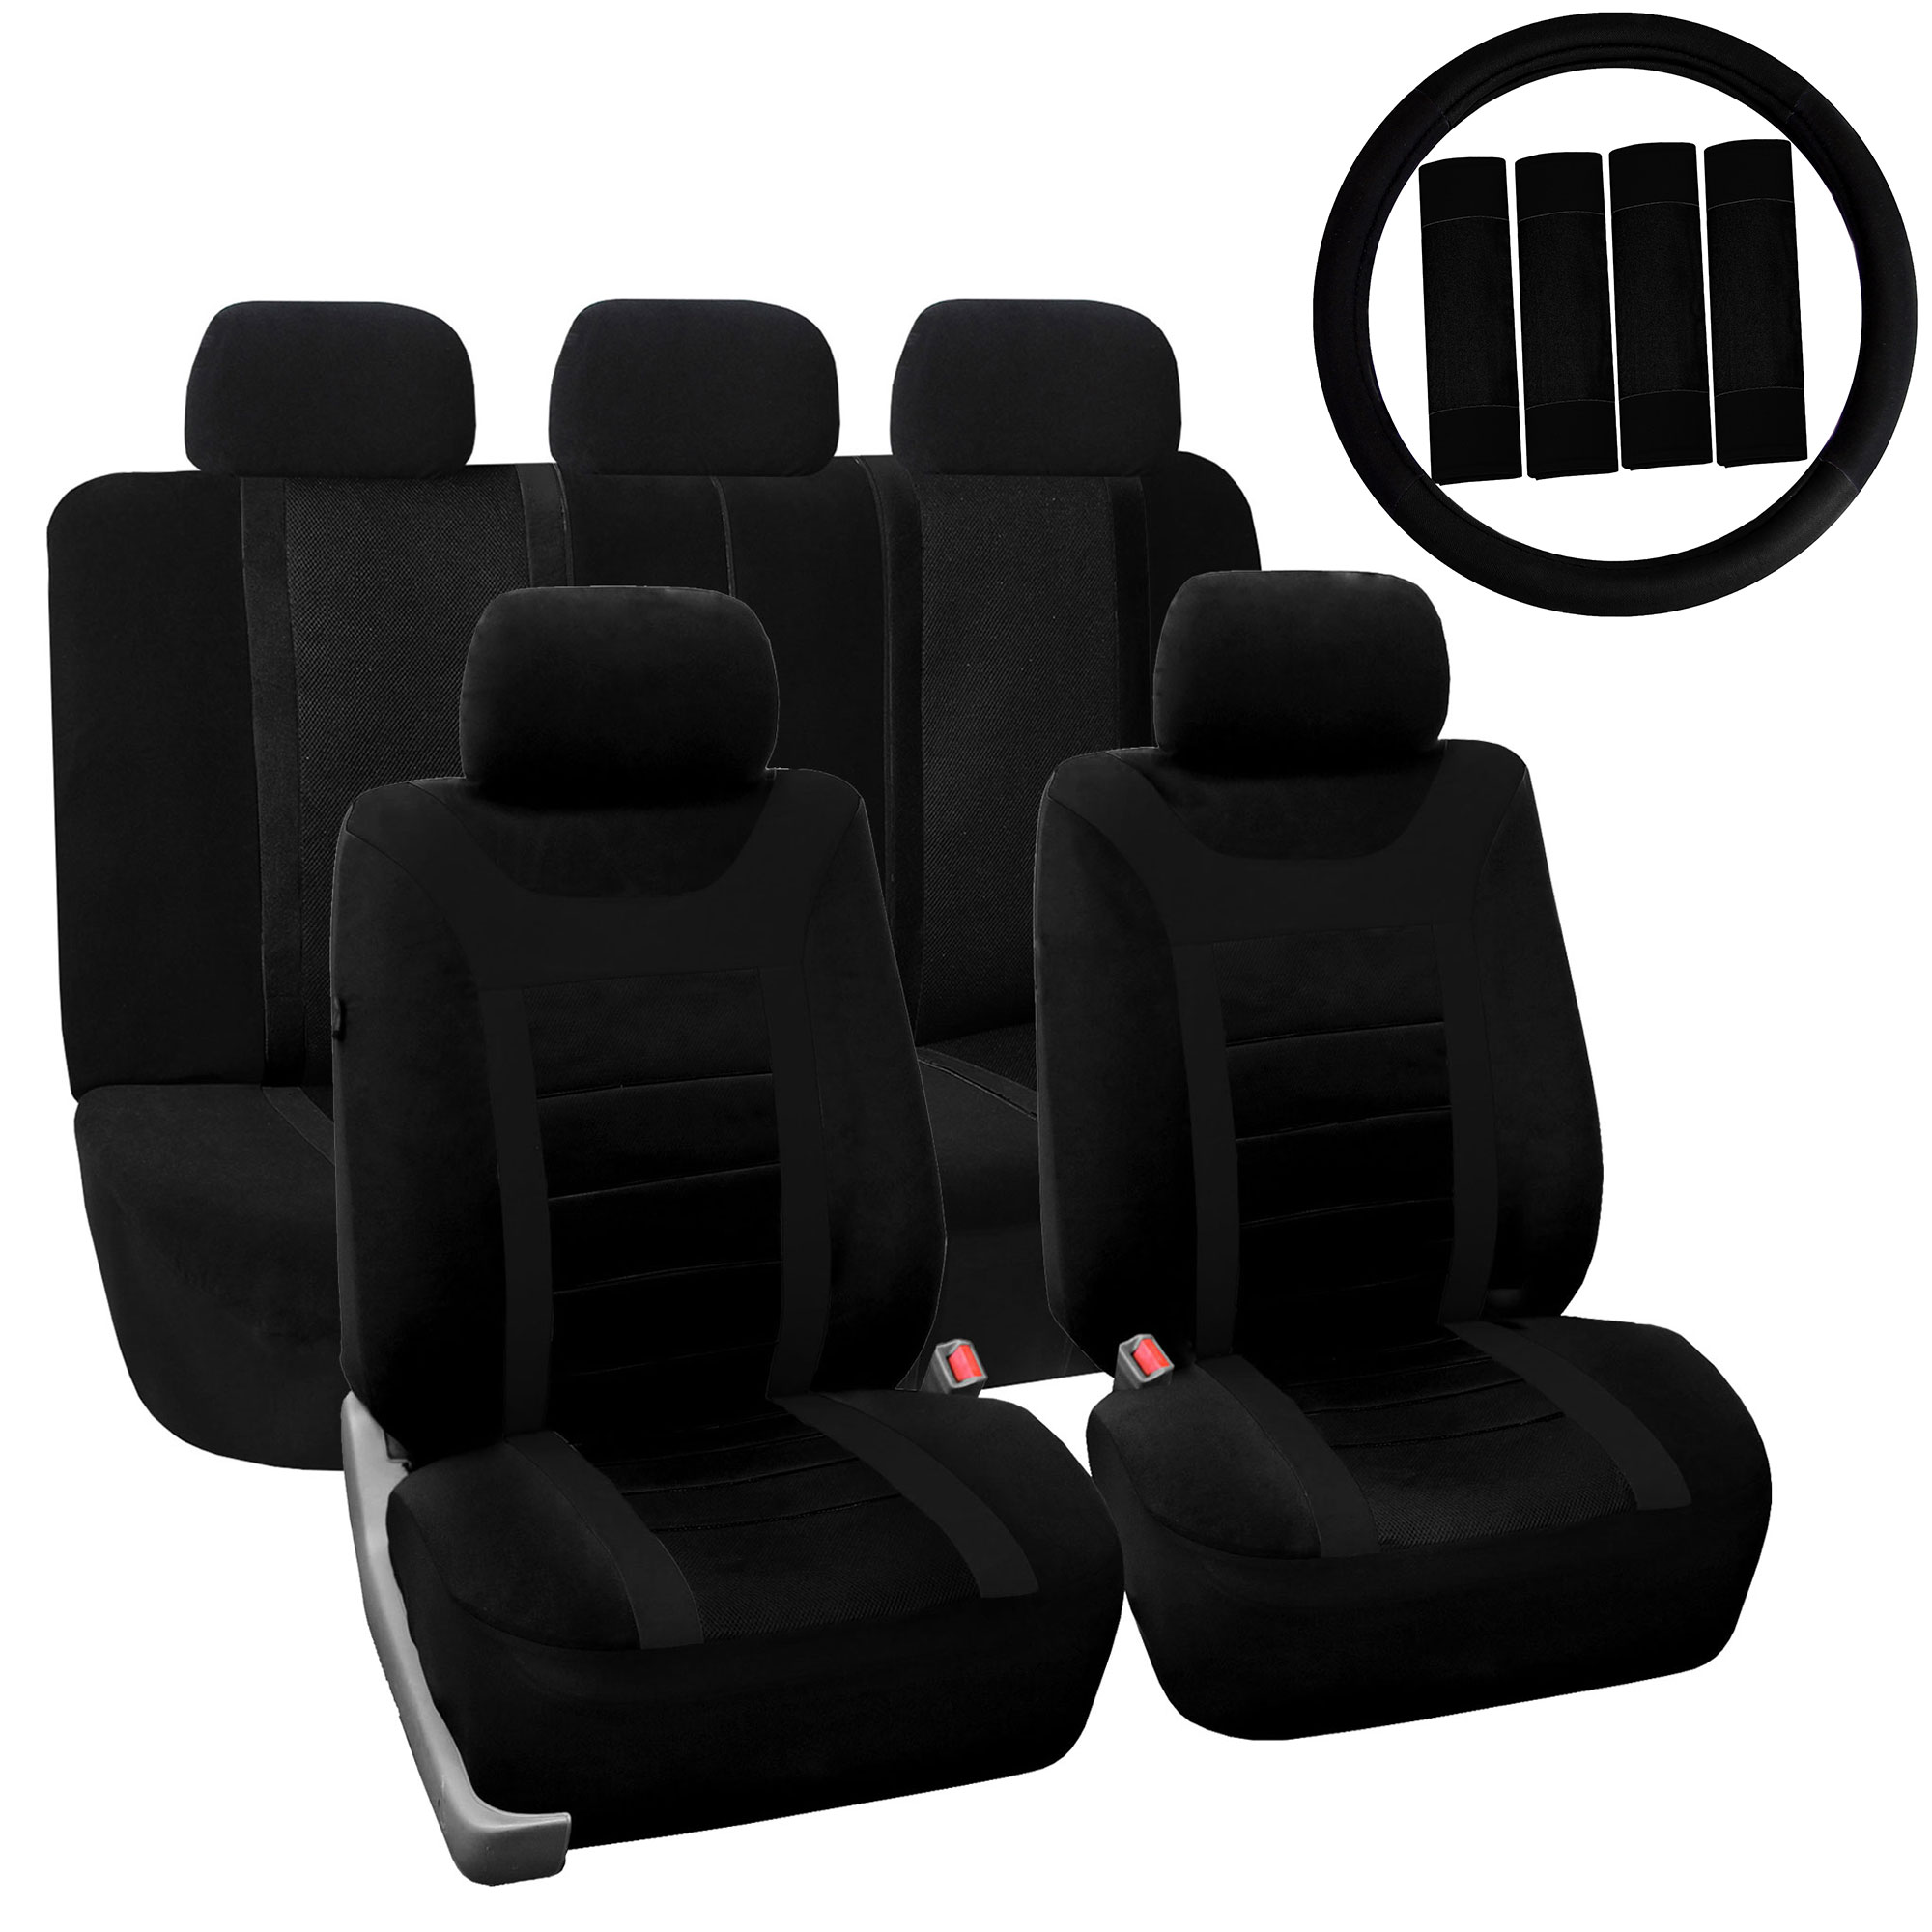 Car Seat Cover For Auto Full Set W Steering Wheel Cover